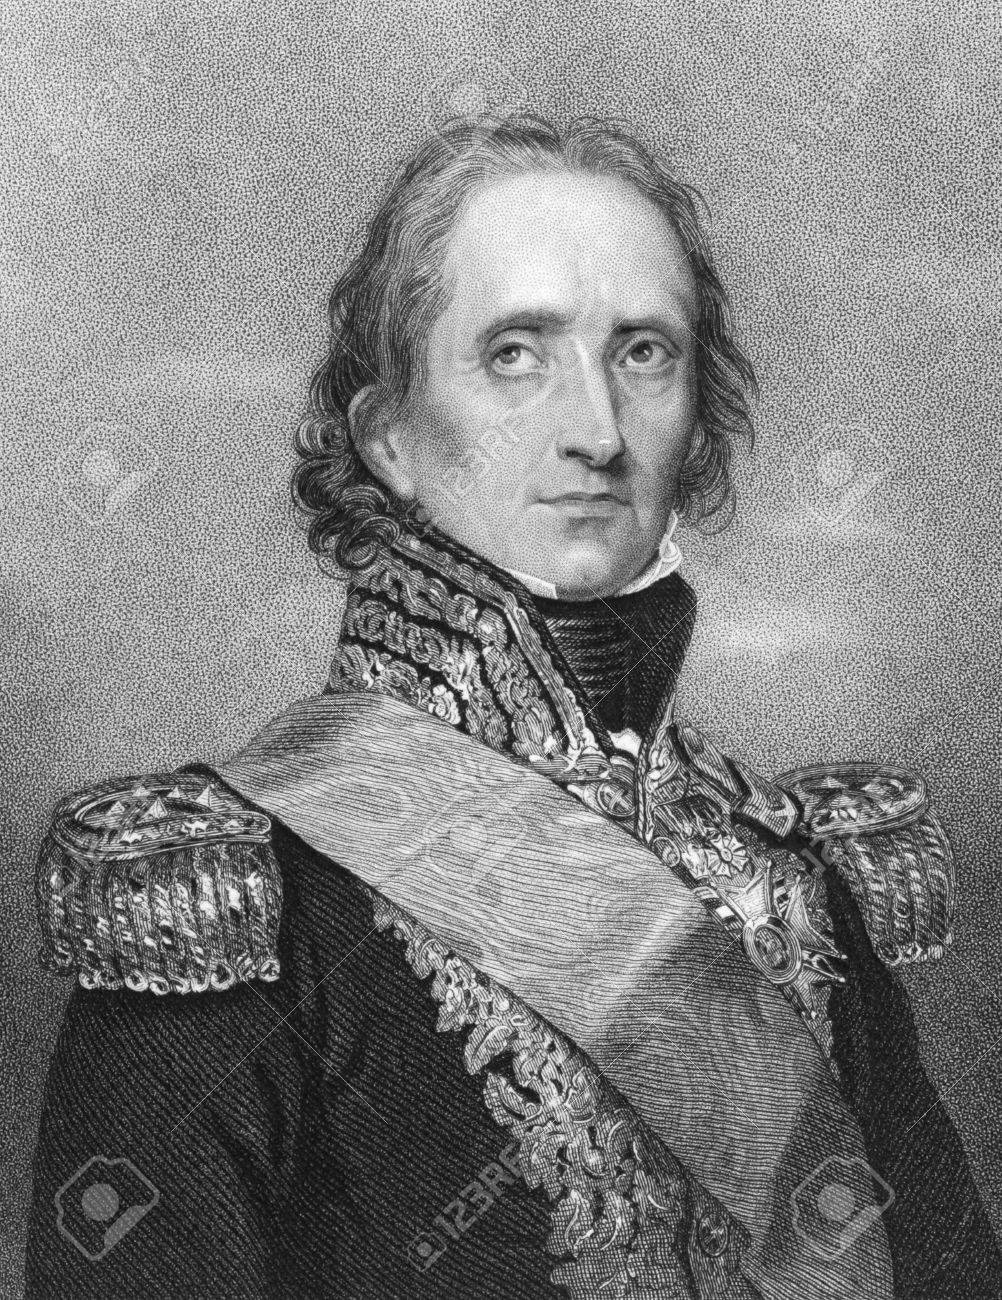 Jean-de-Dieu Soult (1769-1851) on engraving from the 1800s. French general and statesman, named Marshal of the Empire in 1804. Engraved by W.H.Mote after a drawing by Rouillard and published in London Fisher, Son & Co. Stock Photo - 8511468